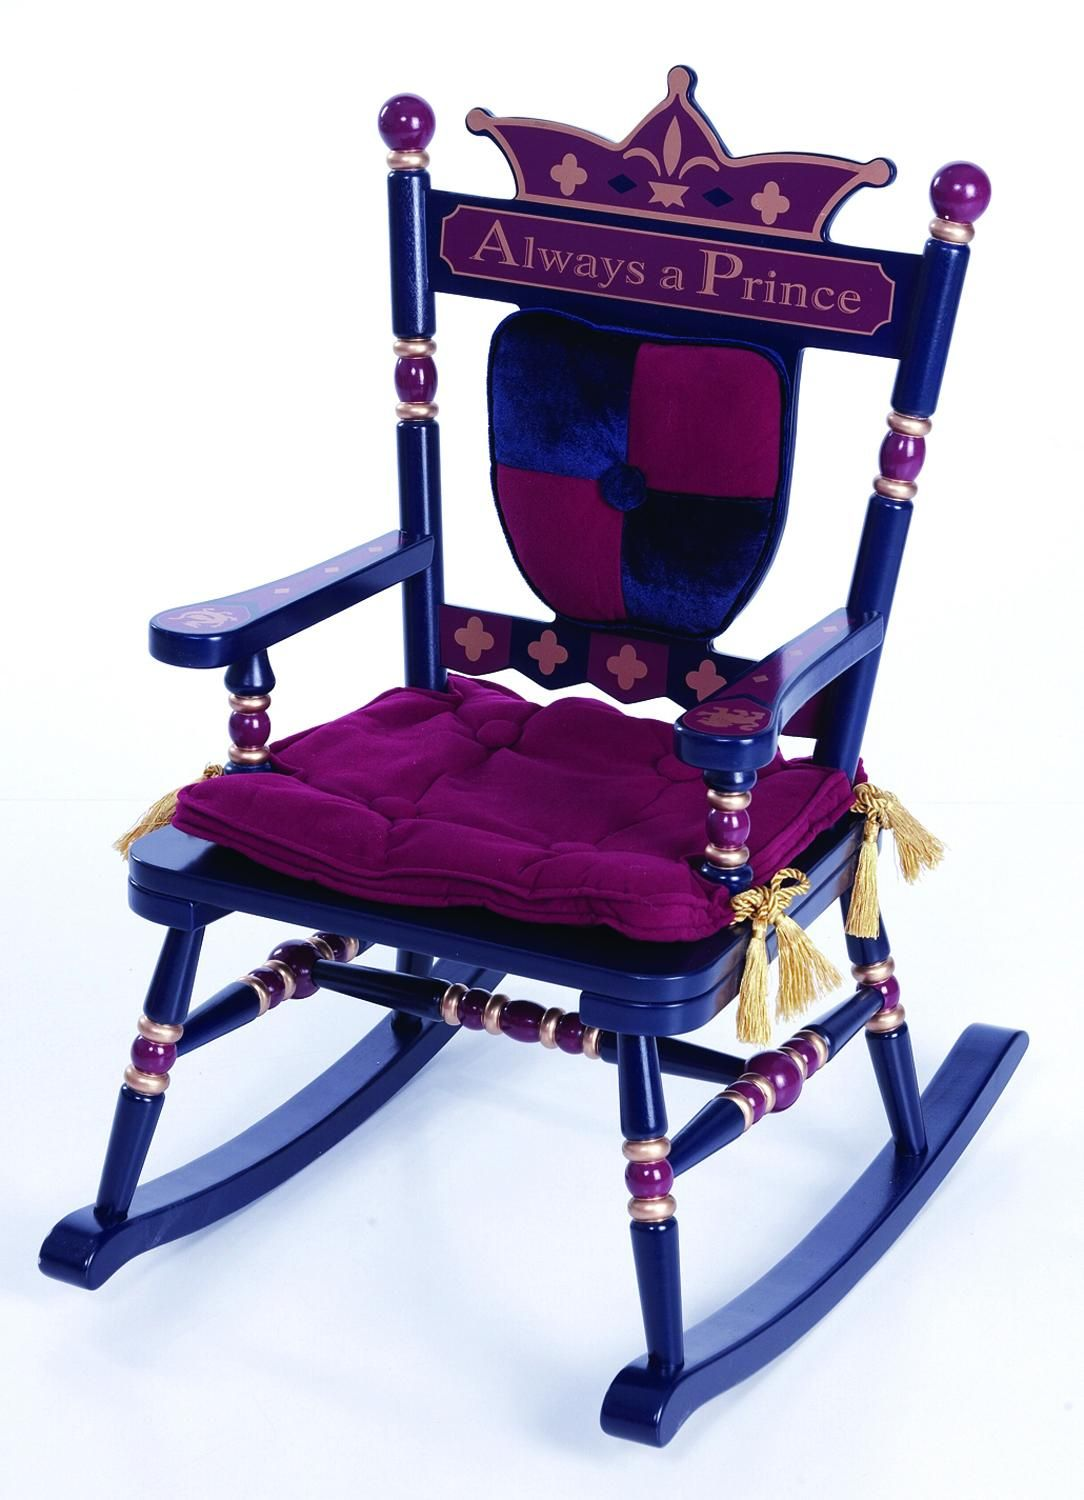 Always a Prince Royal Rocking Chair